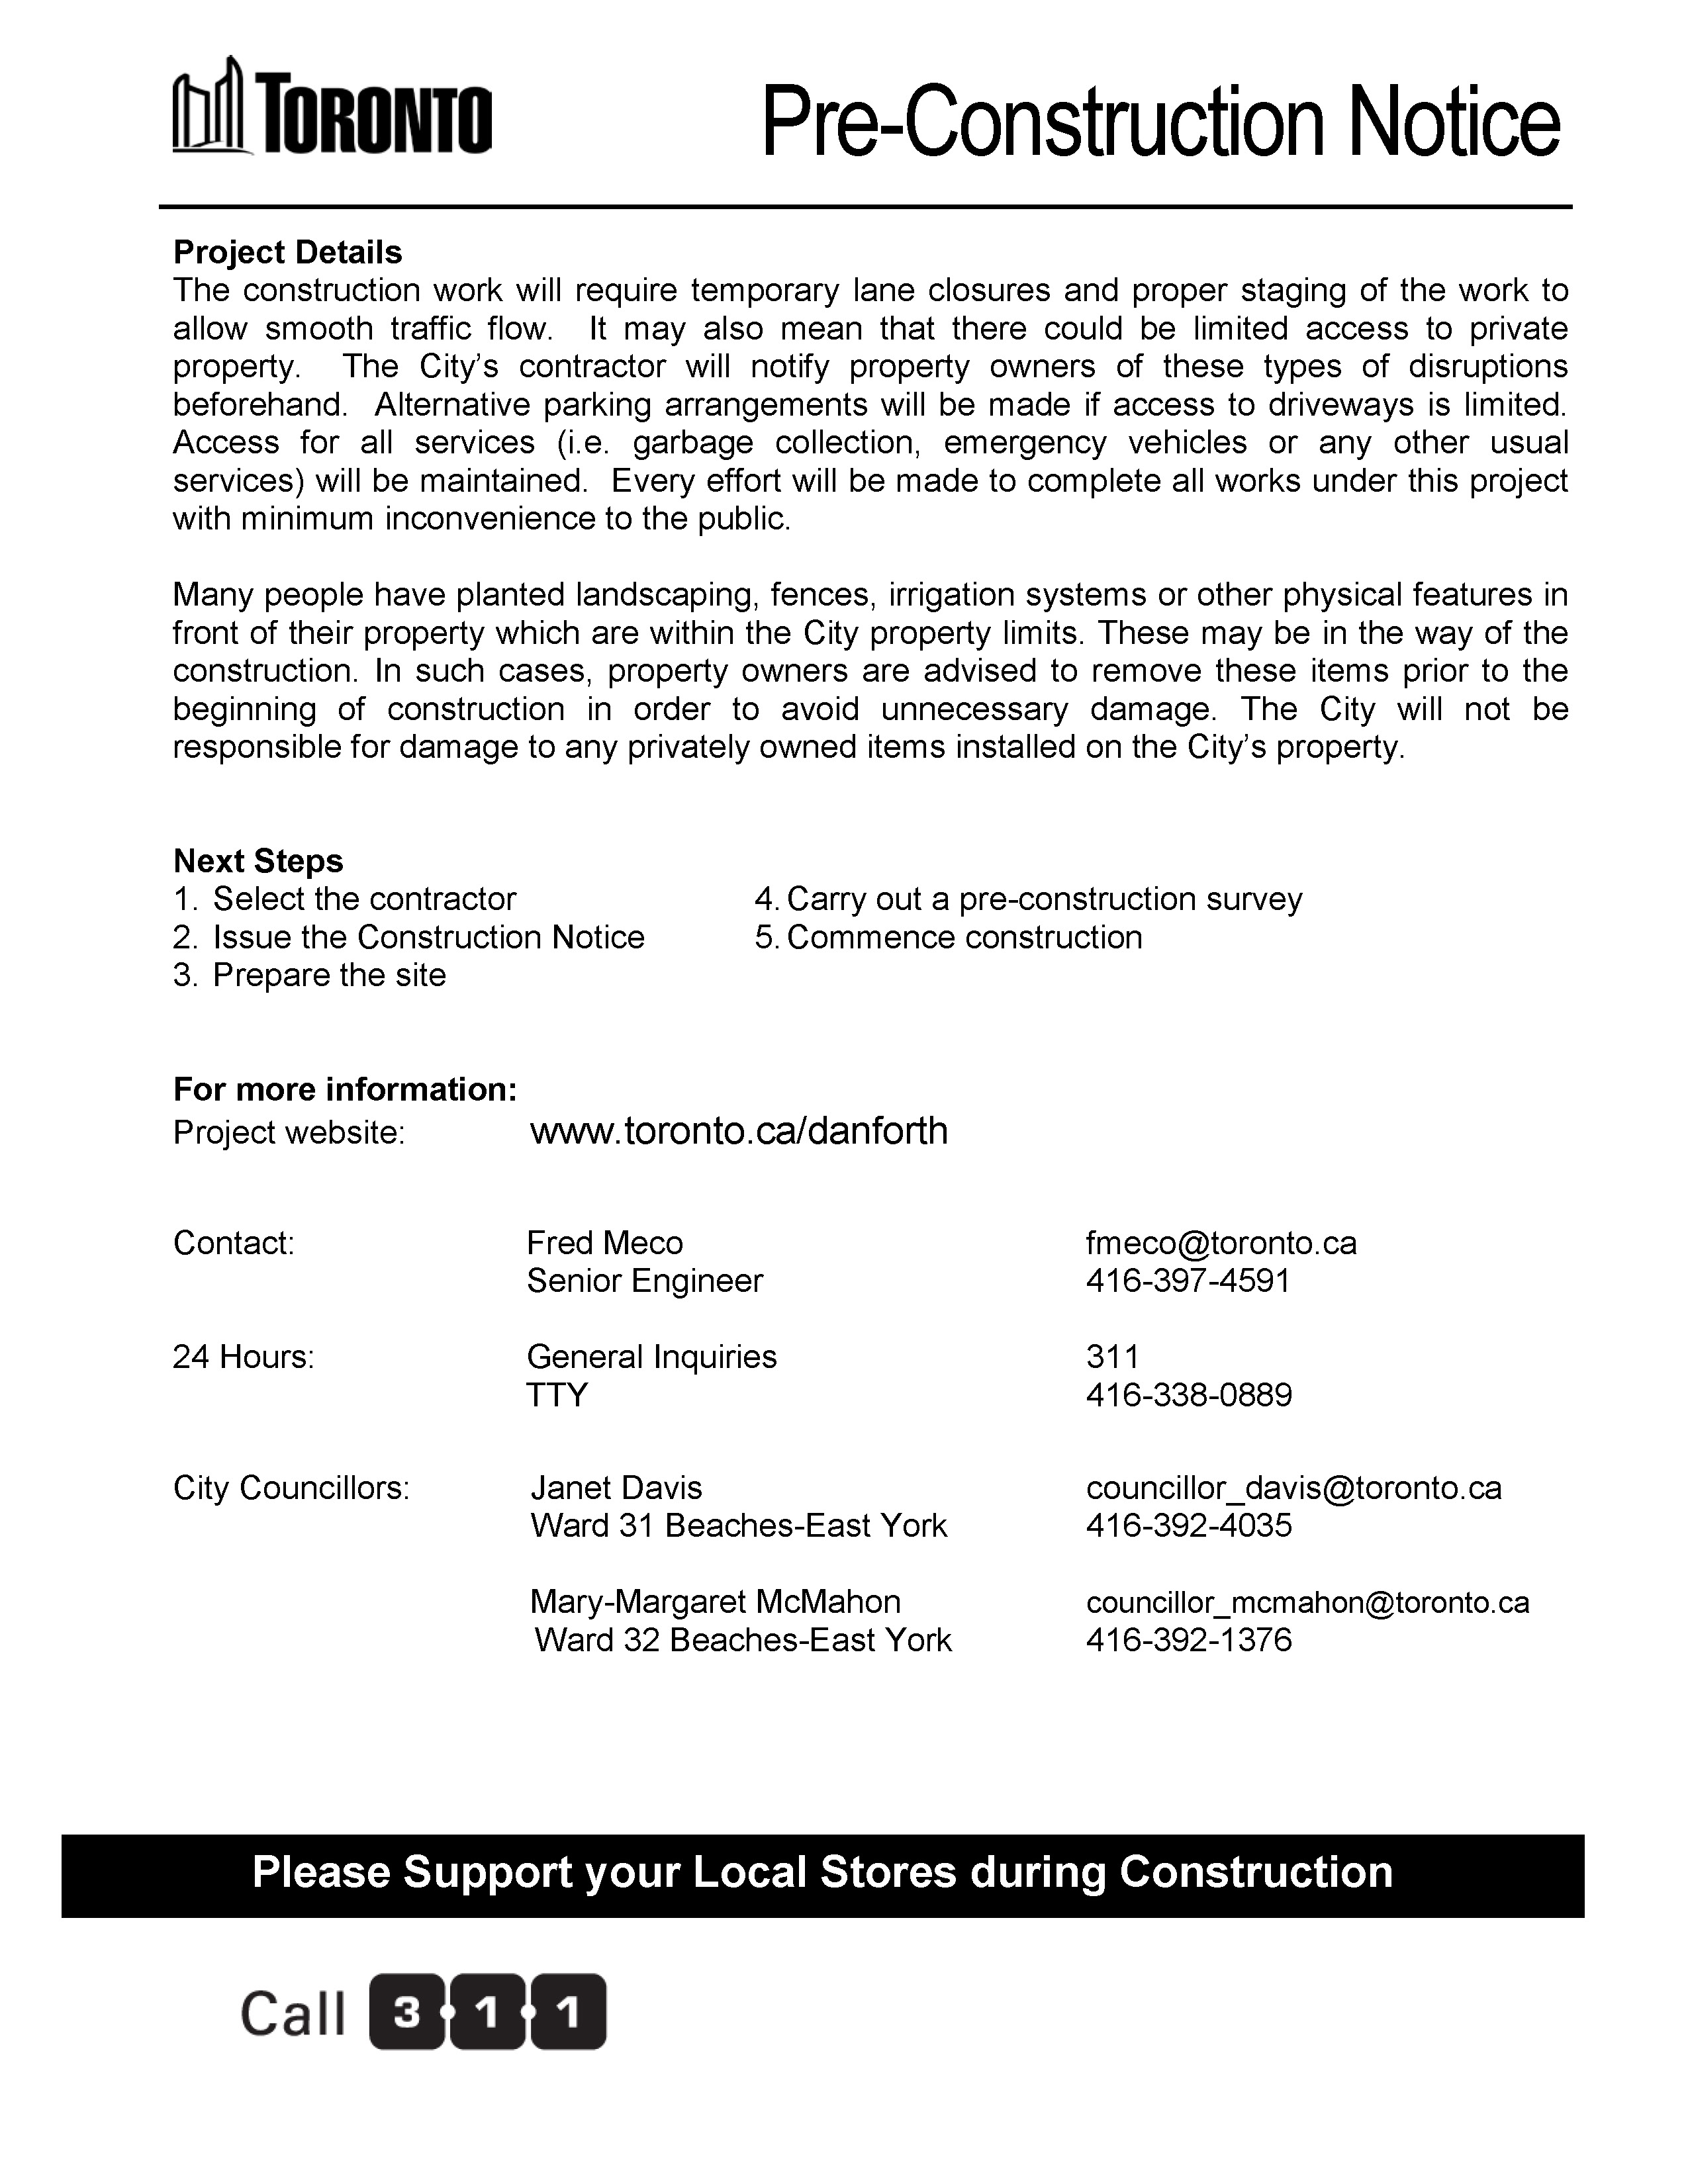 Pre-Construction Notice Woodbine Avenue to Dawes Road_Page_2